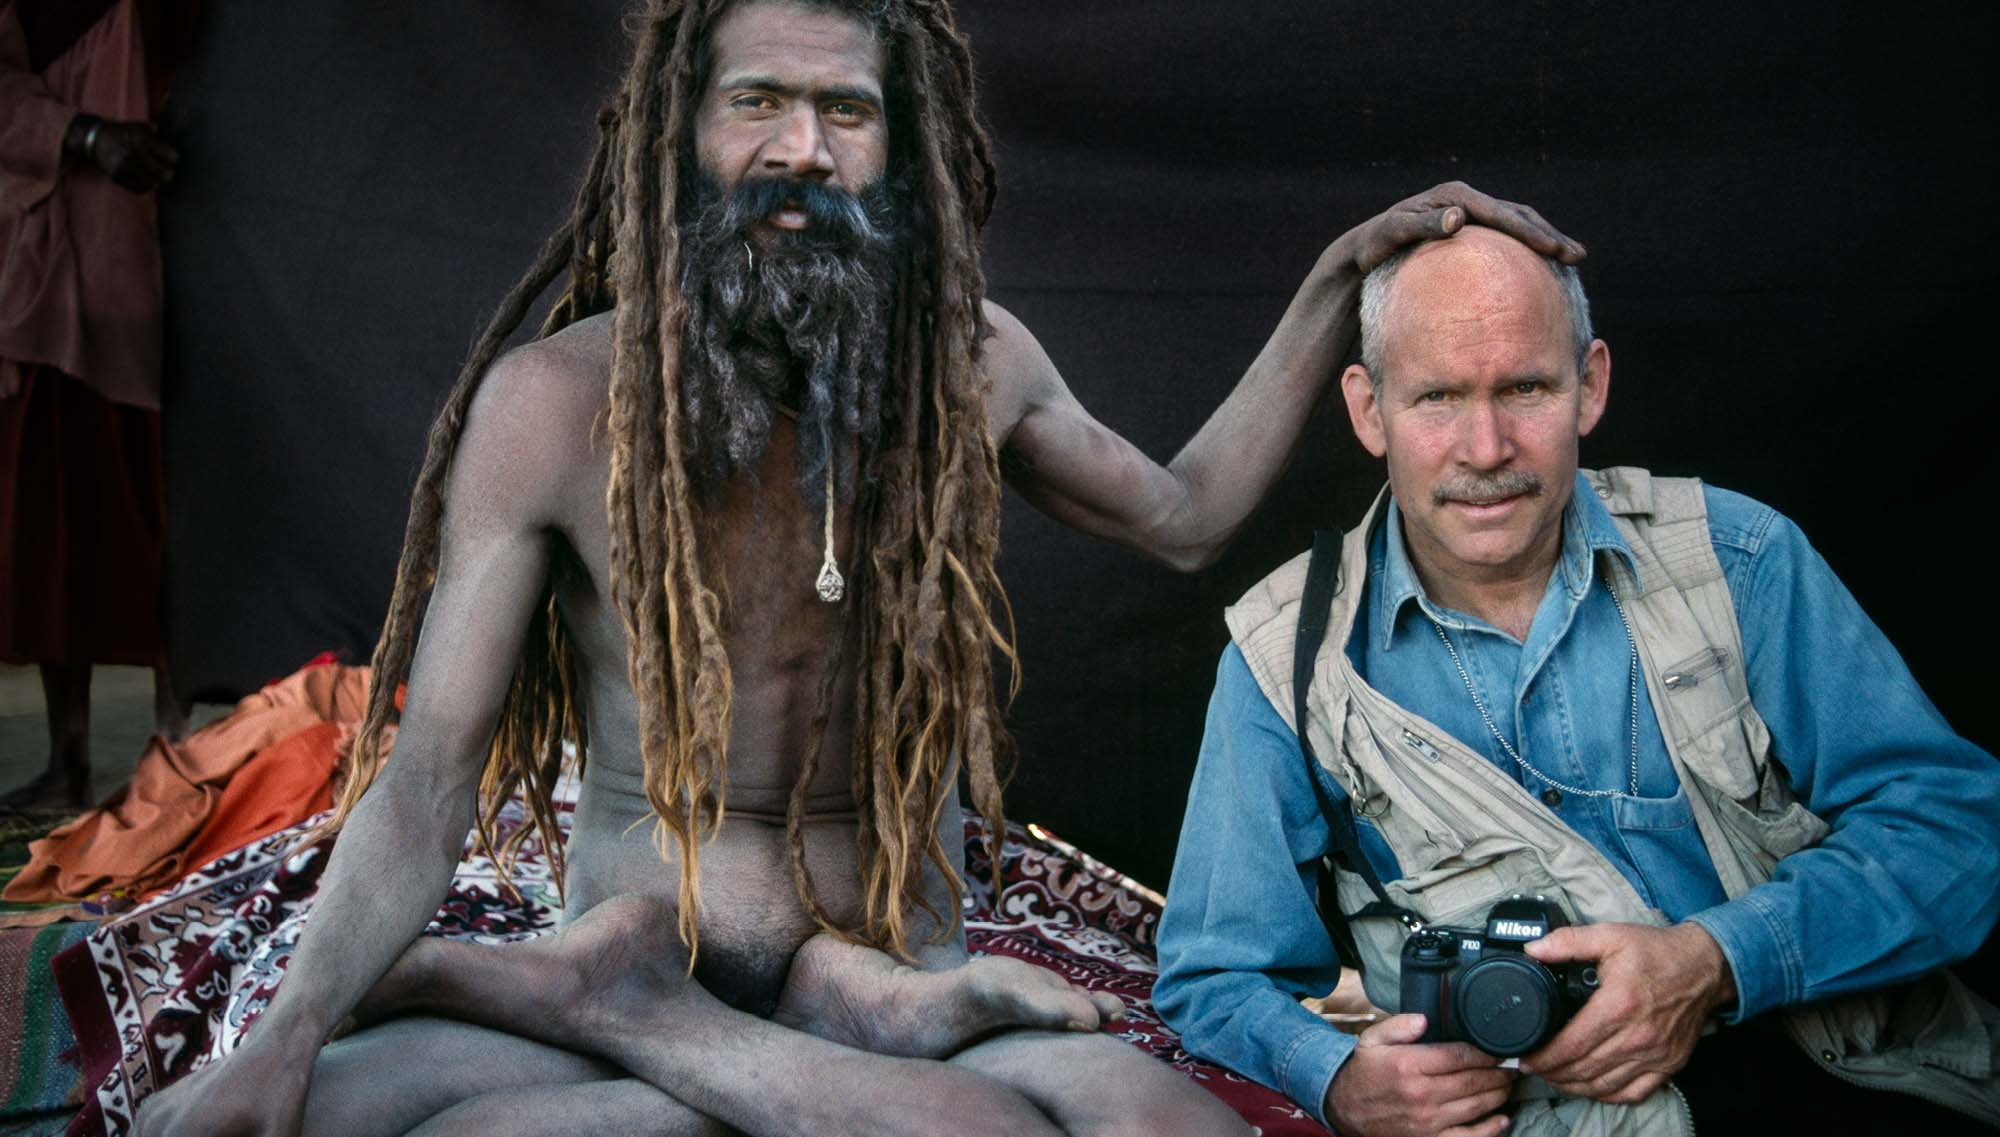 Steve McCurry in India.